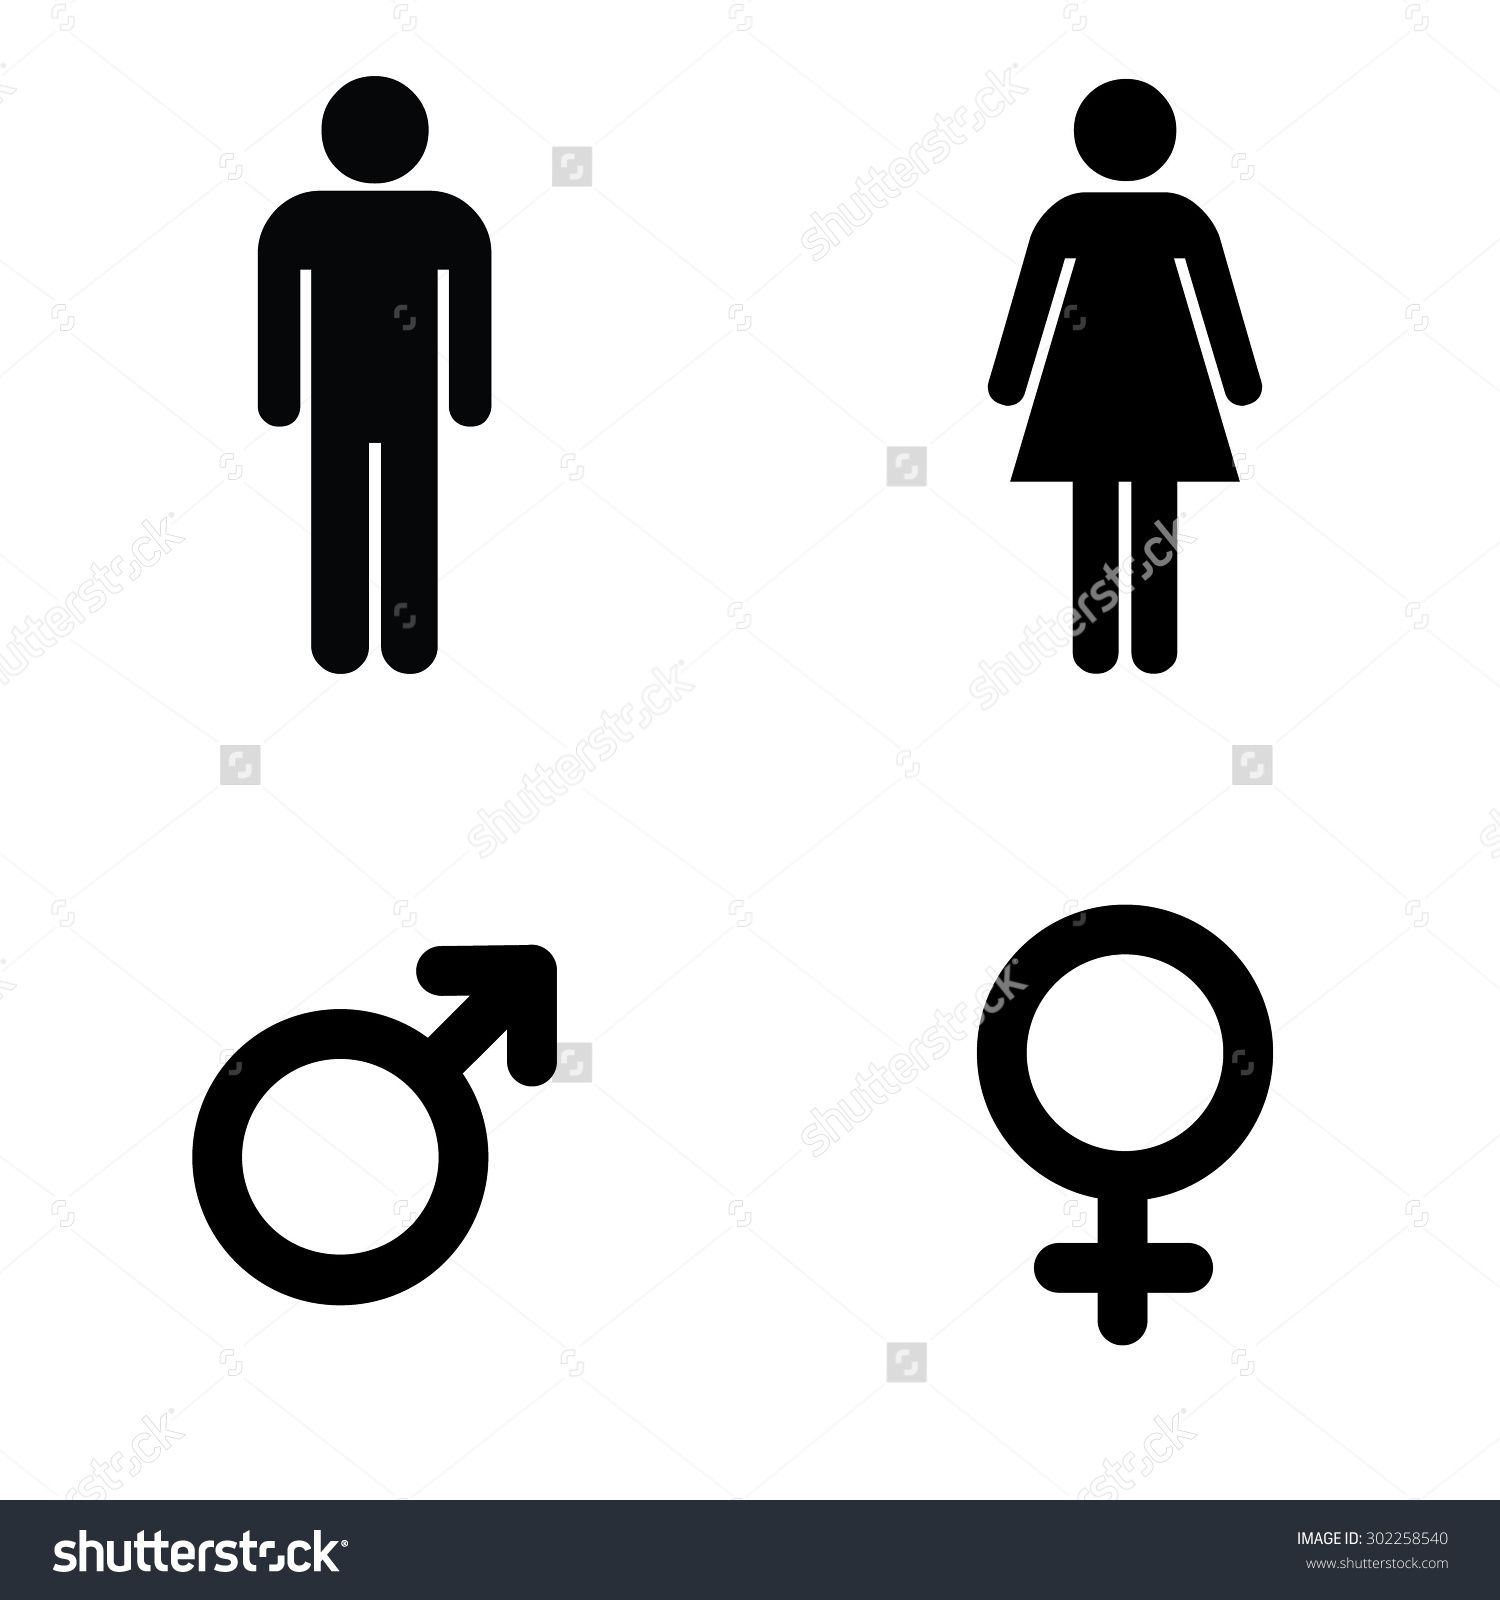 Men women symbols image collections symbol and sign ideas related image google doodle inspiration pinterest doodle related image buycottarizona biocorpaavc